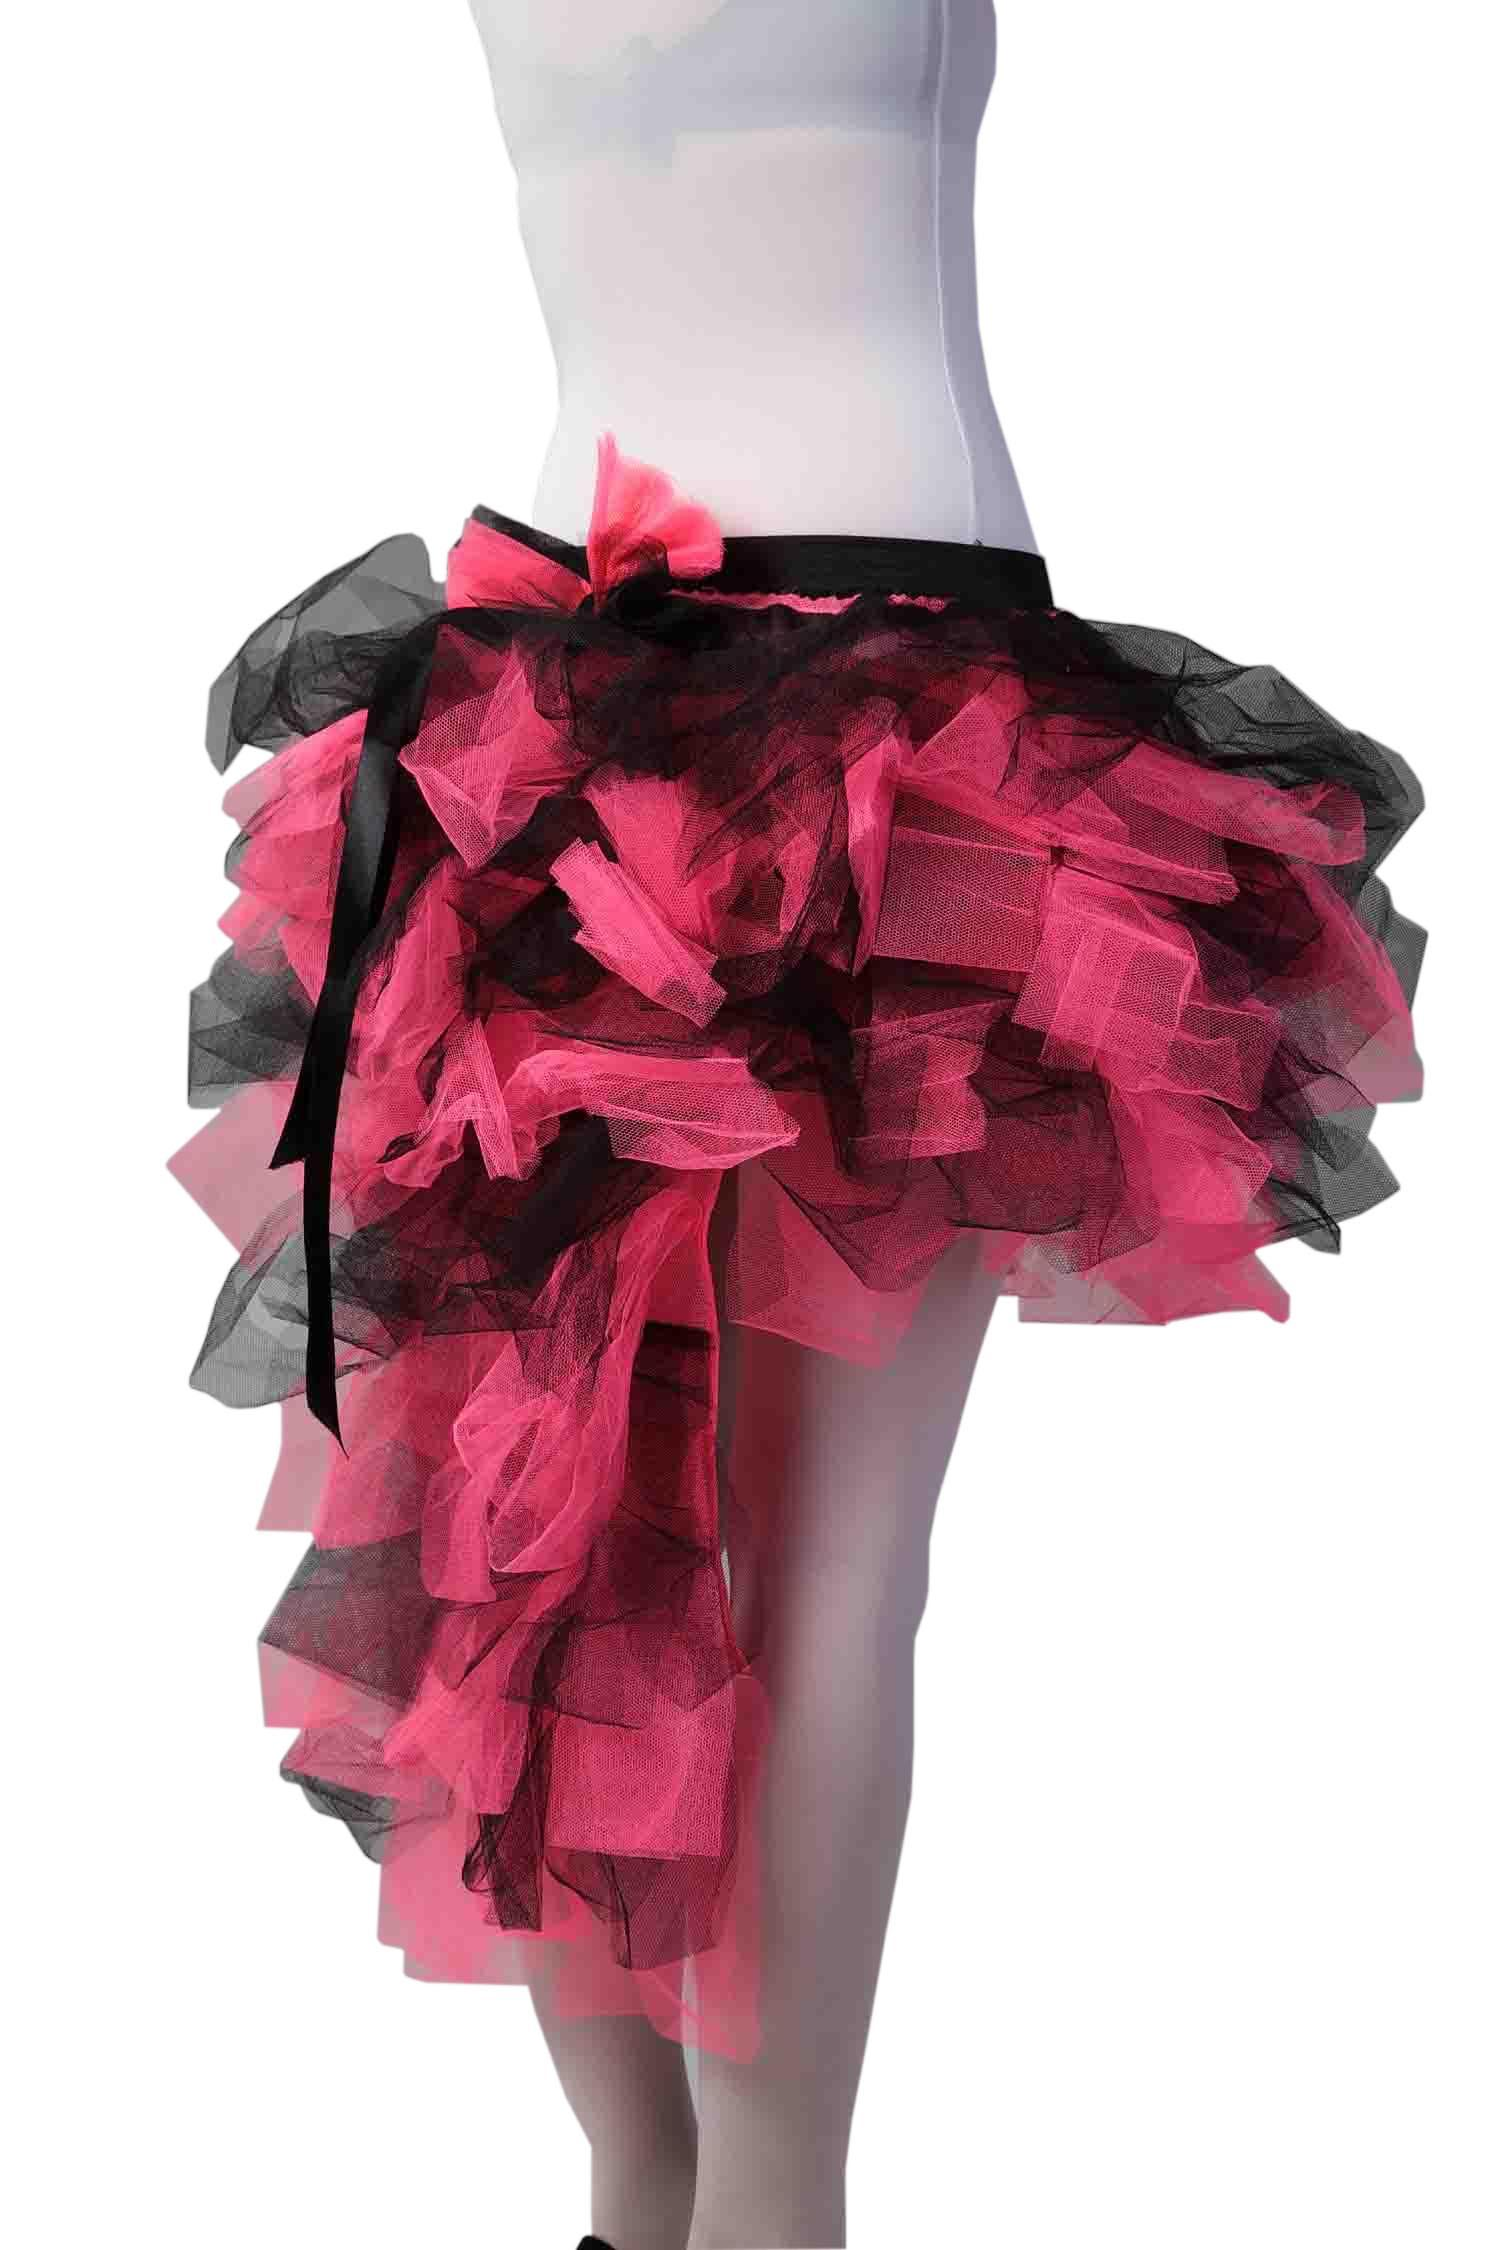 Crazy Chick Long Tail Burlesque Black And Pink Tutu Skirt